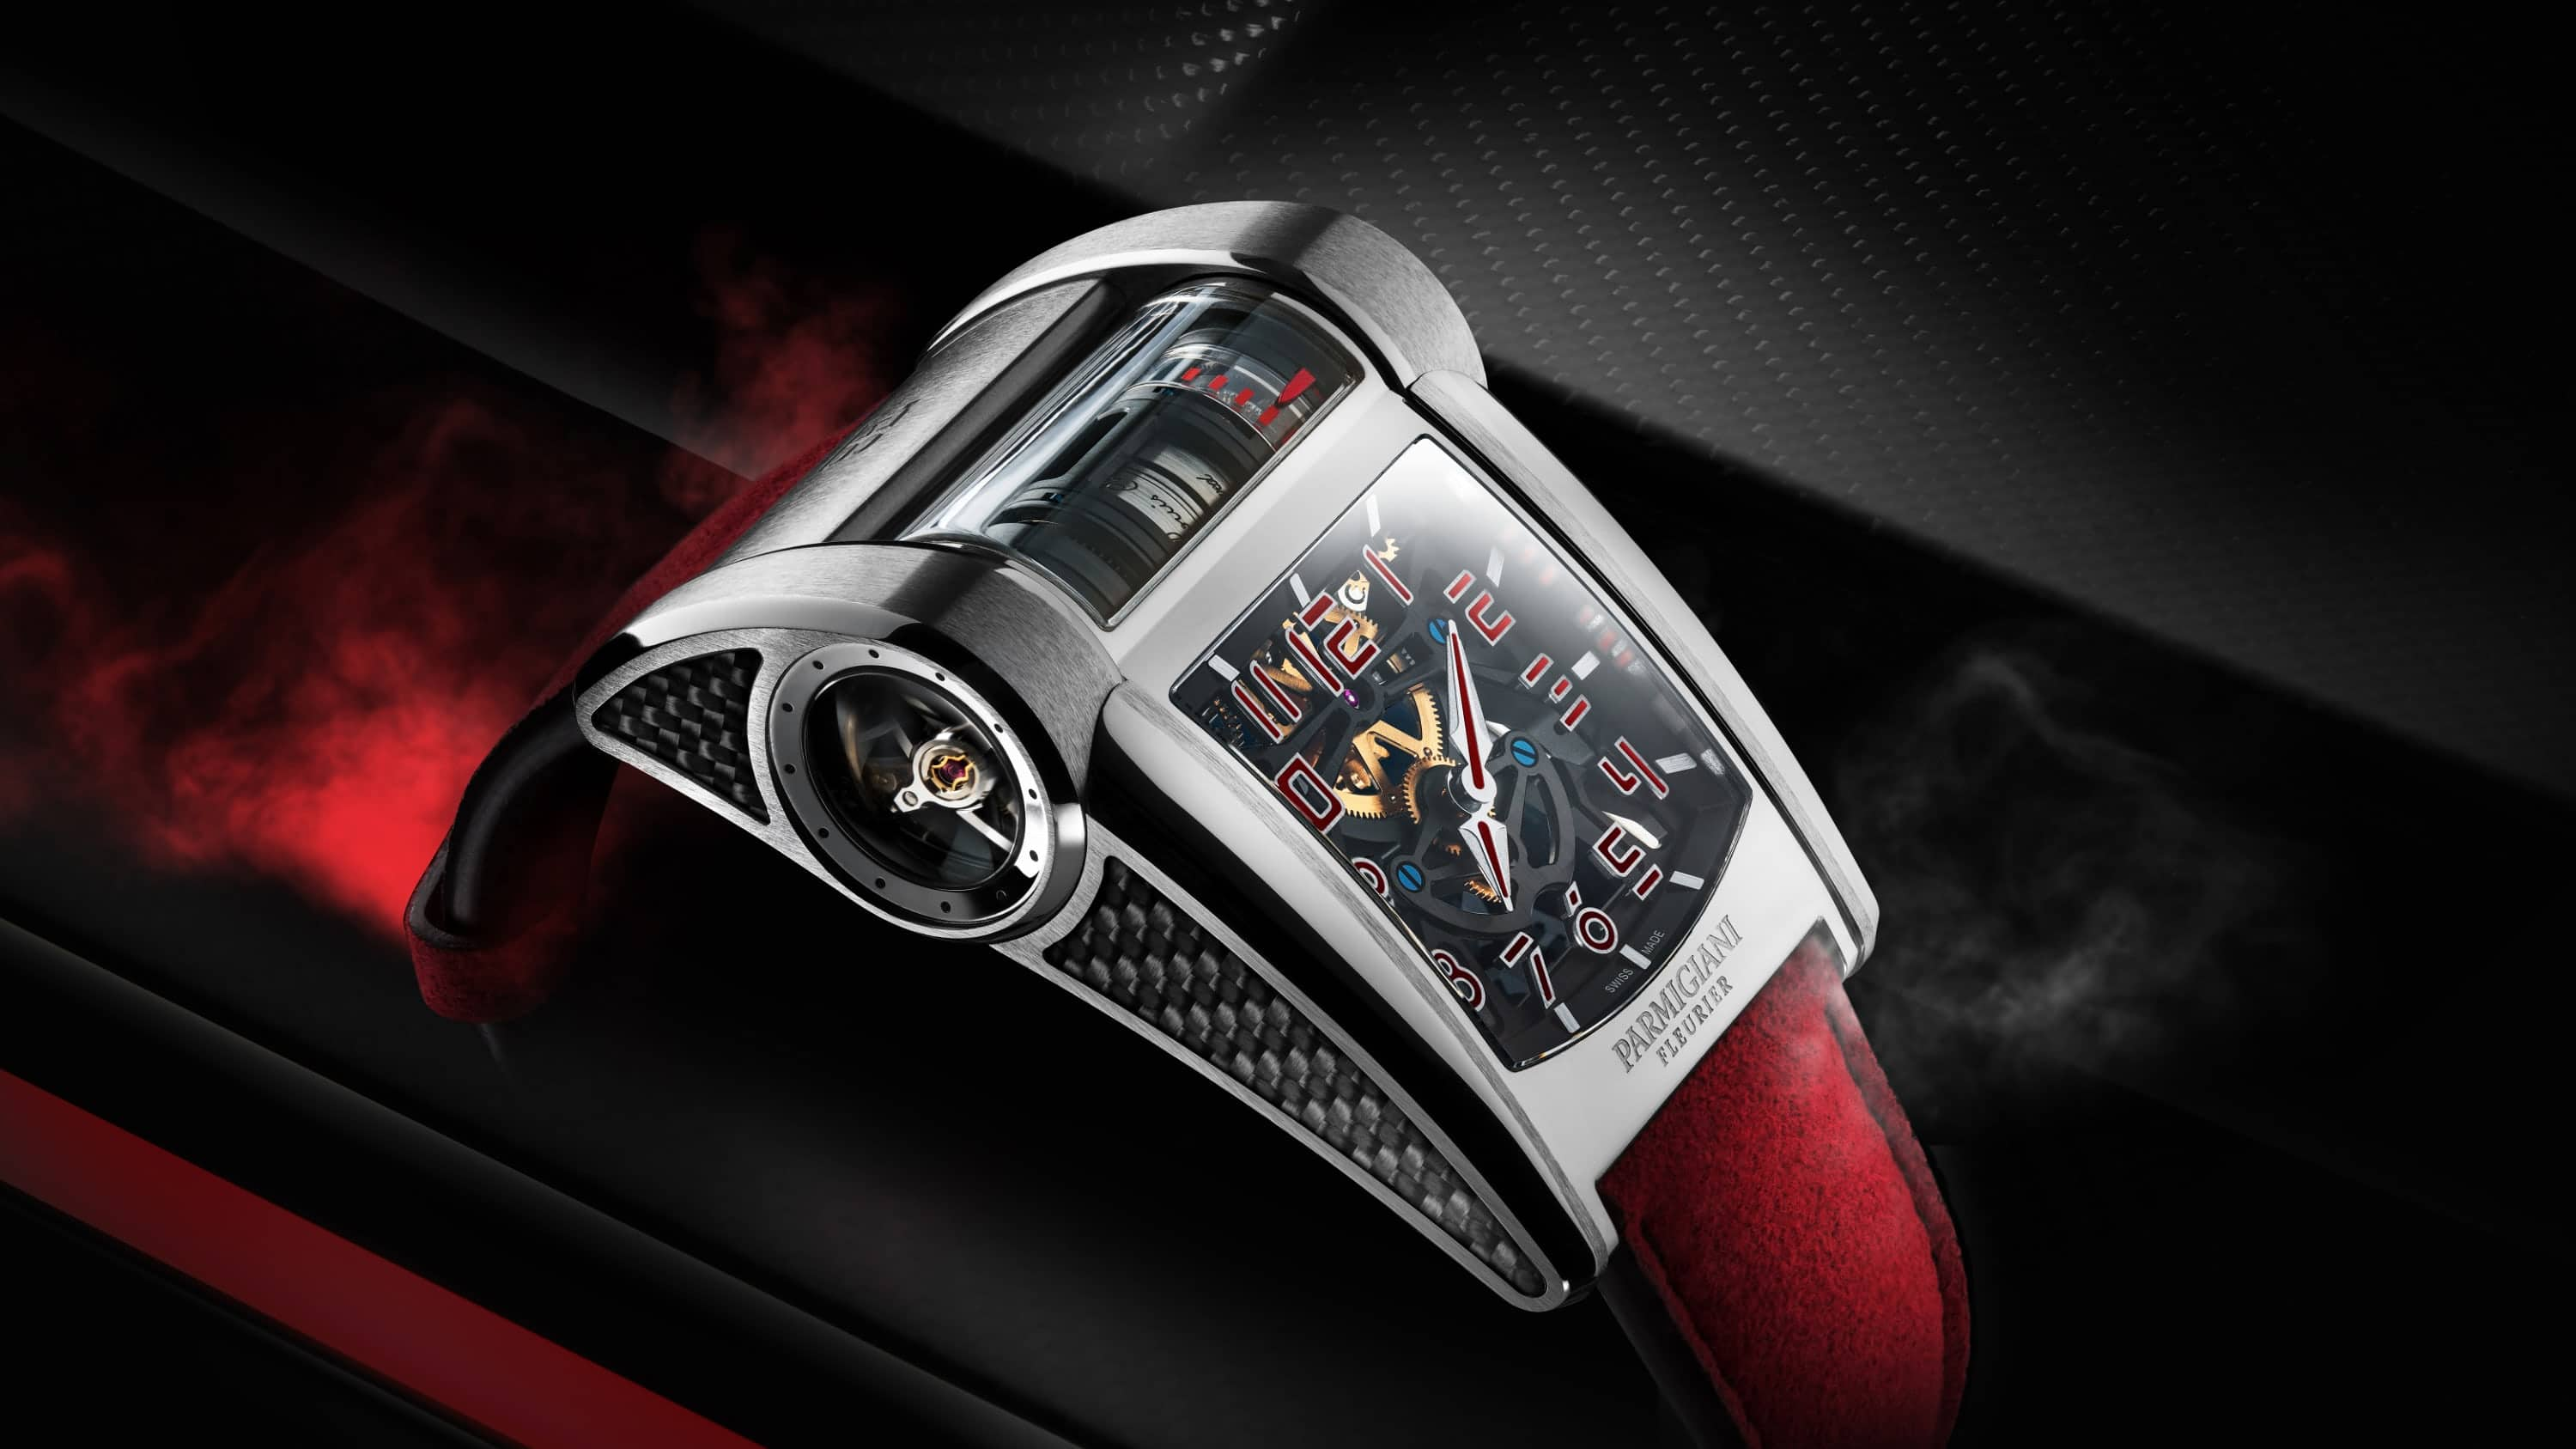 Clutch tocalibre: 5 timepieces crafted exclusively for automobile enthusiasts